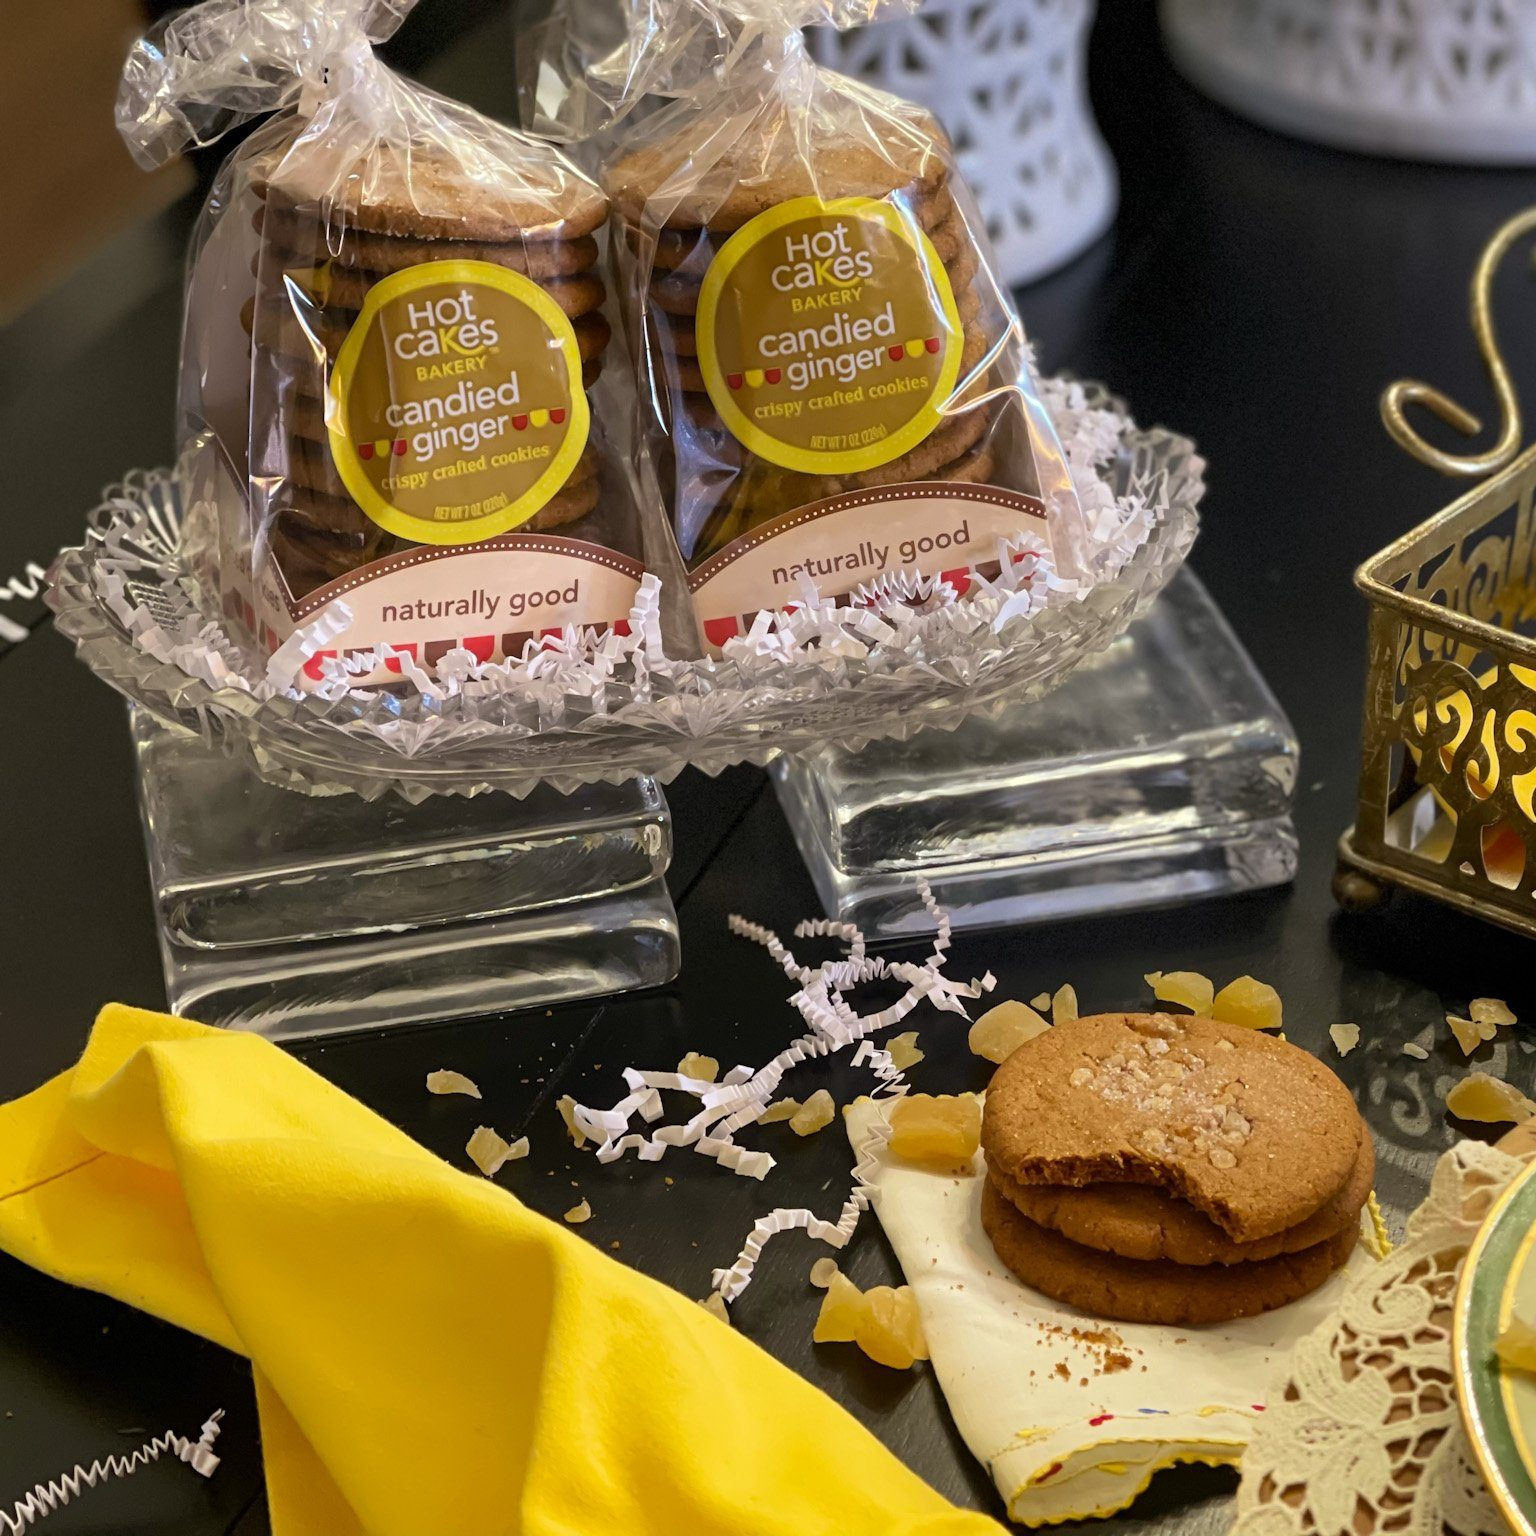 Hot Cakes Bakery - Crispy Crafted Candied Ginger Cookies 2